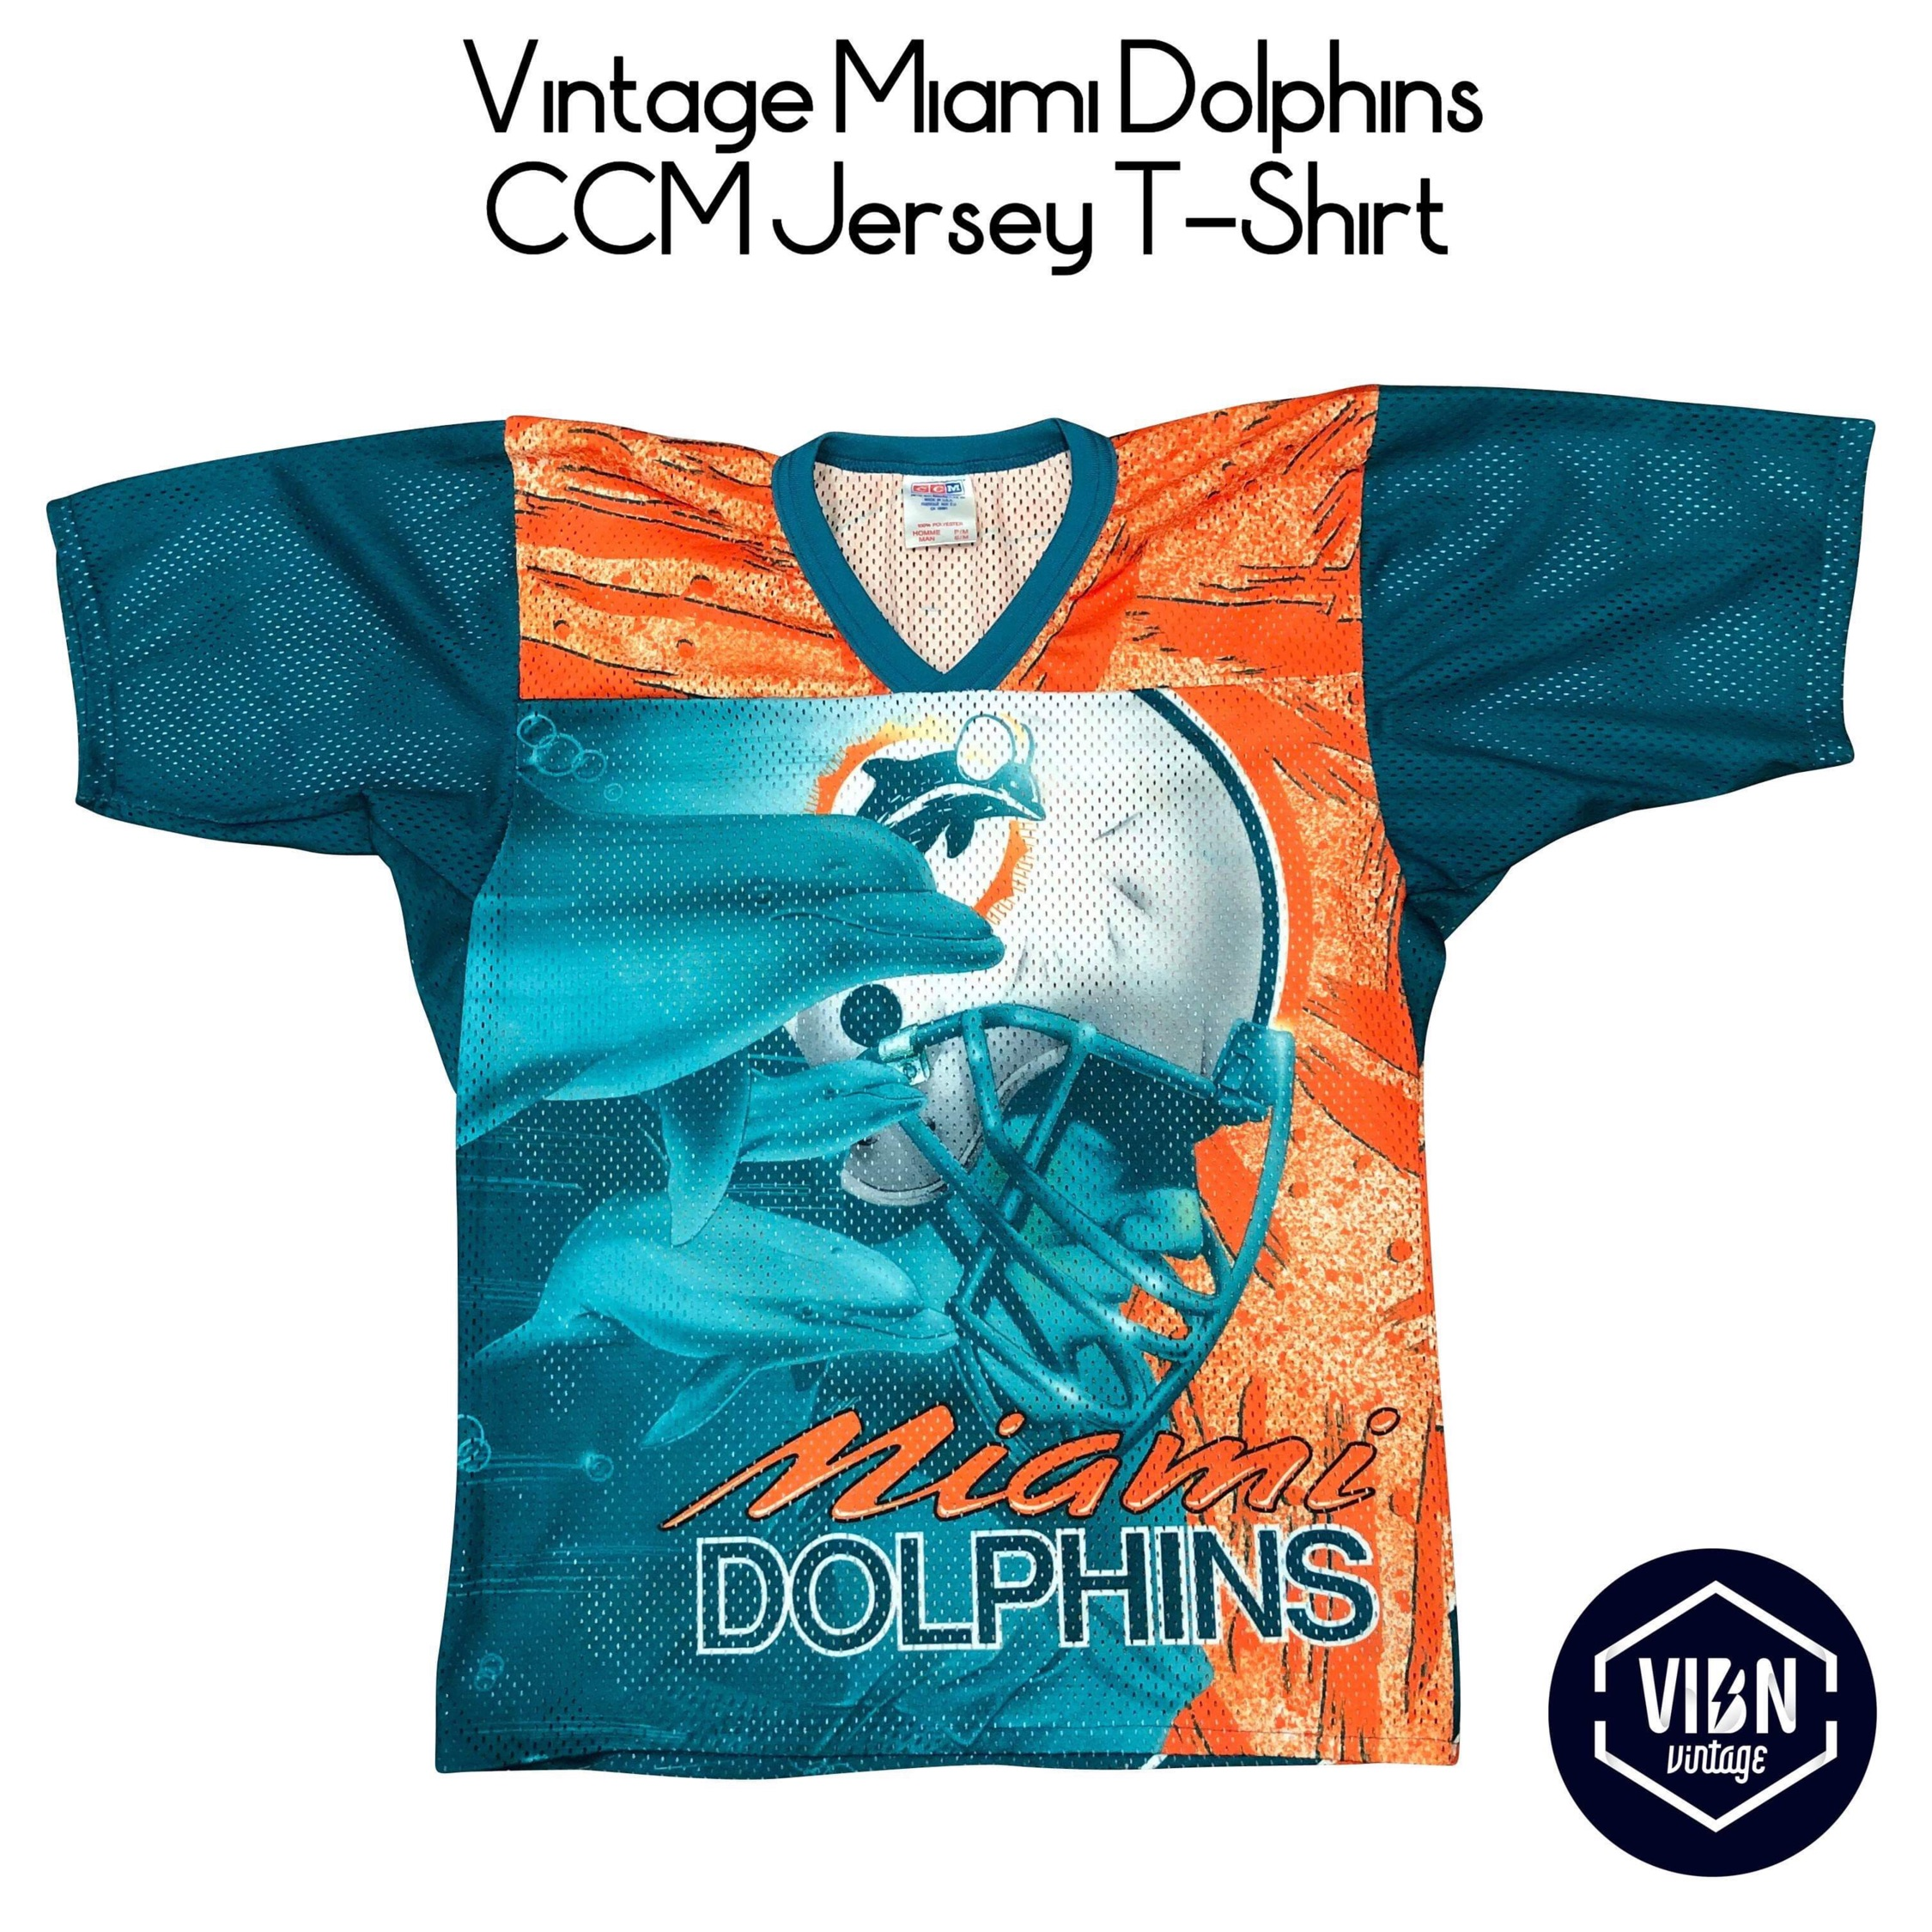 hot sale online ee2a5 b756c Vintage Miami Dolphins Ccm Jersey T-Shirt